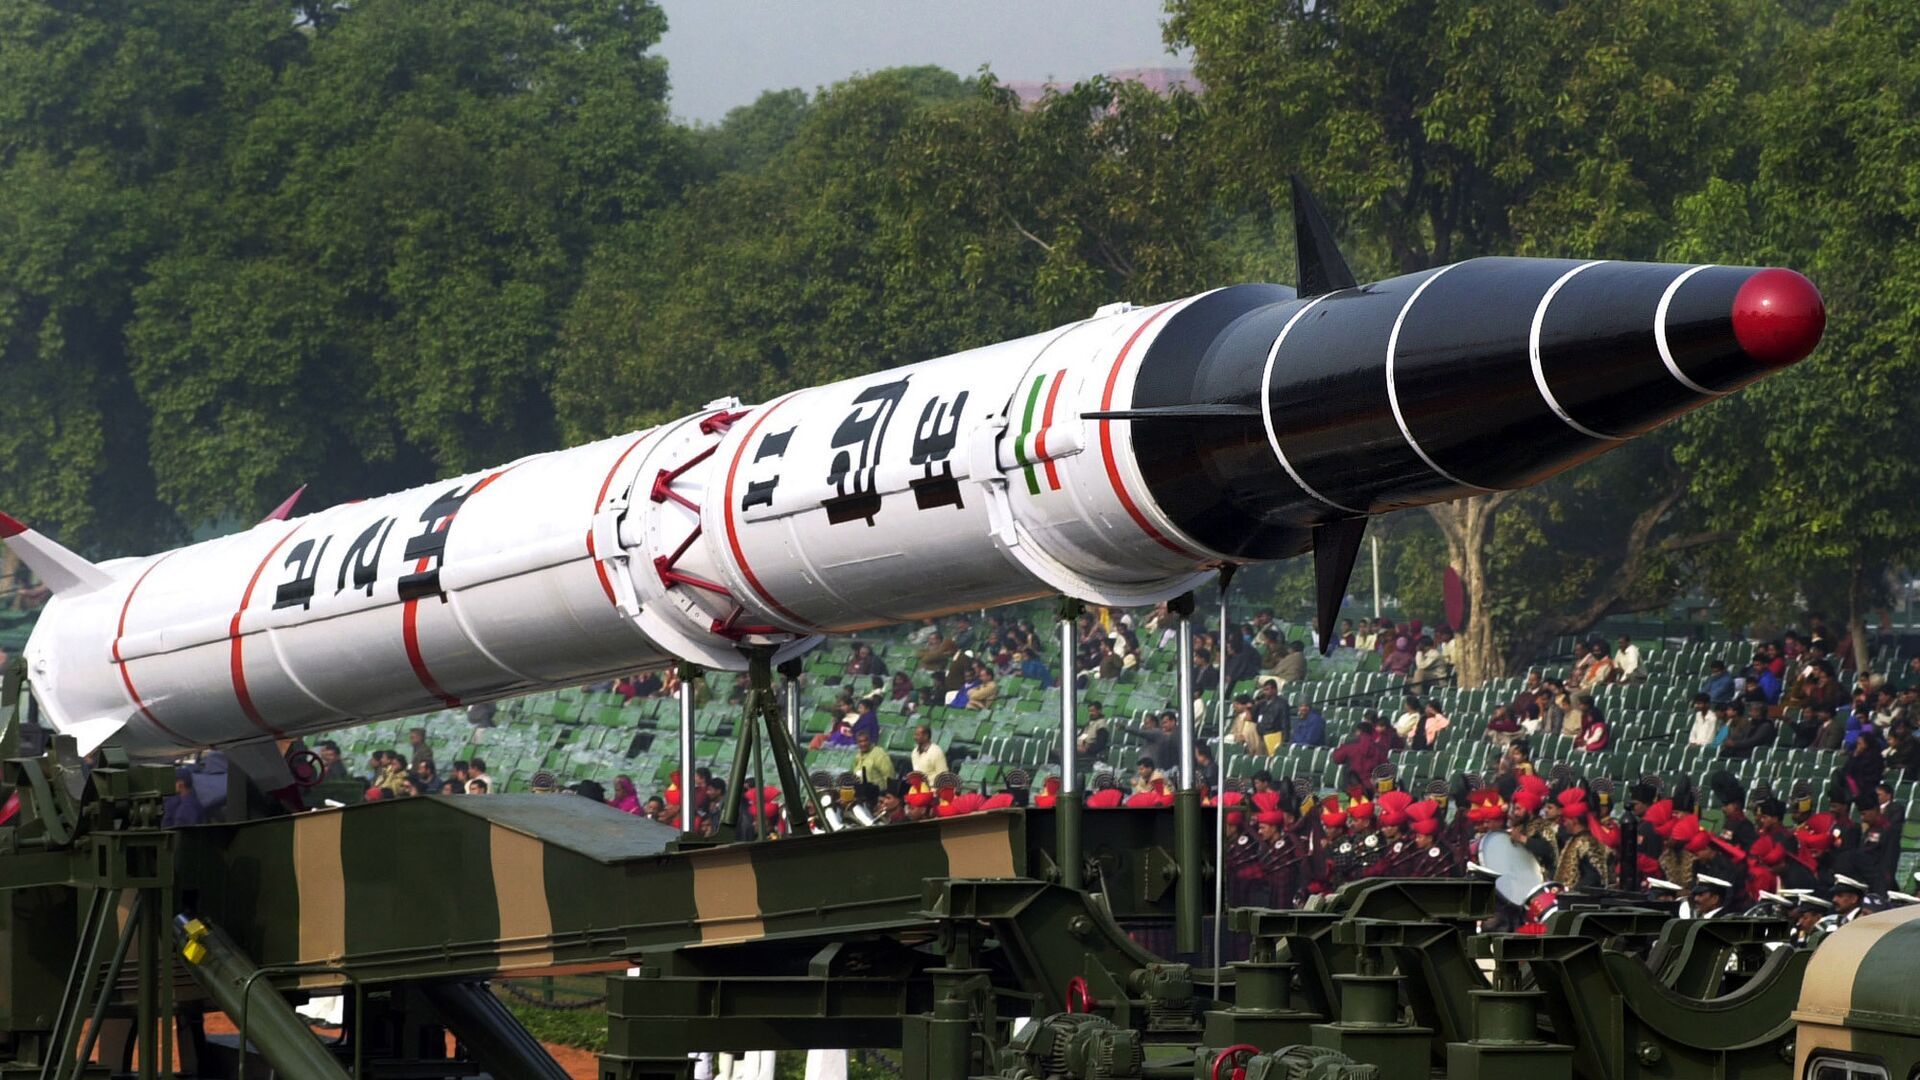 India's Agni II missile is seen in a rehearsal for the Republic Day Parade in New Delhi, India. - Sputnik Mundo, 1920, 28.06.2021